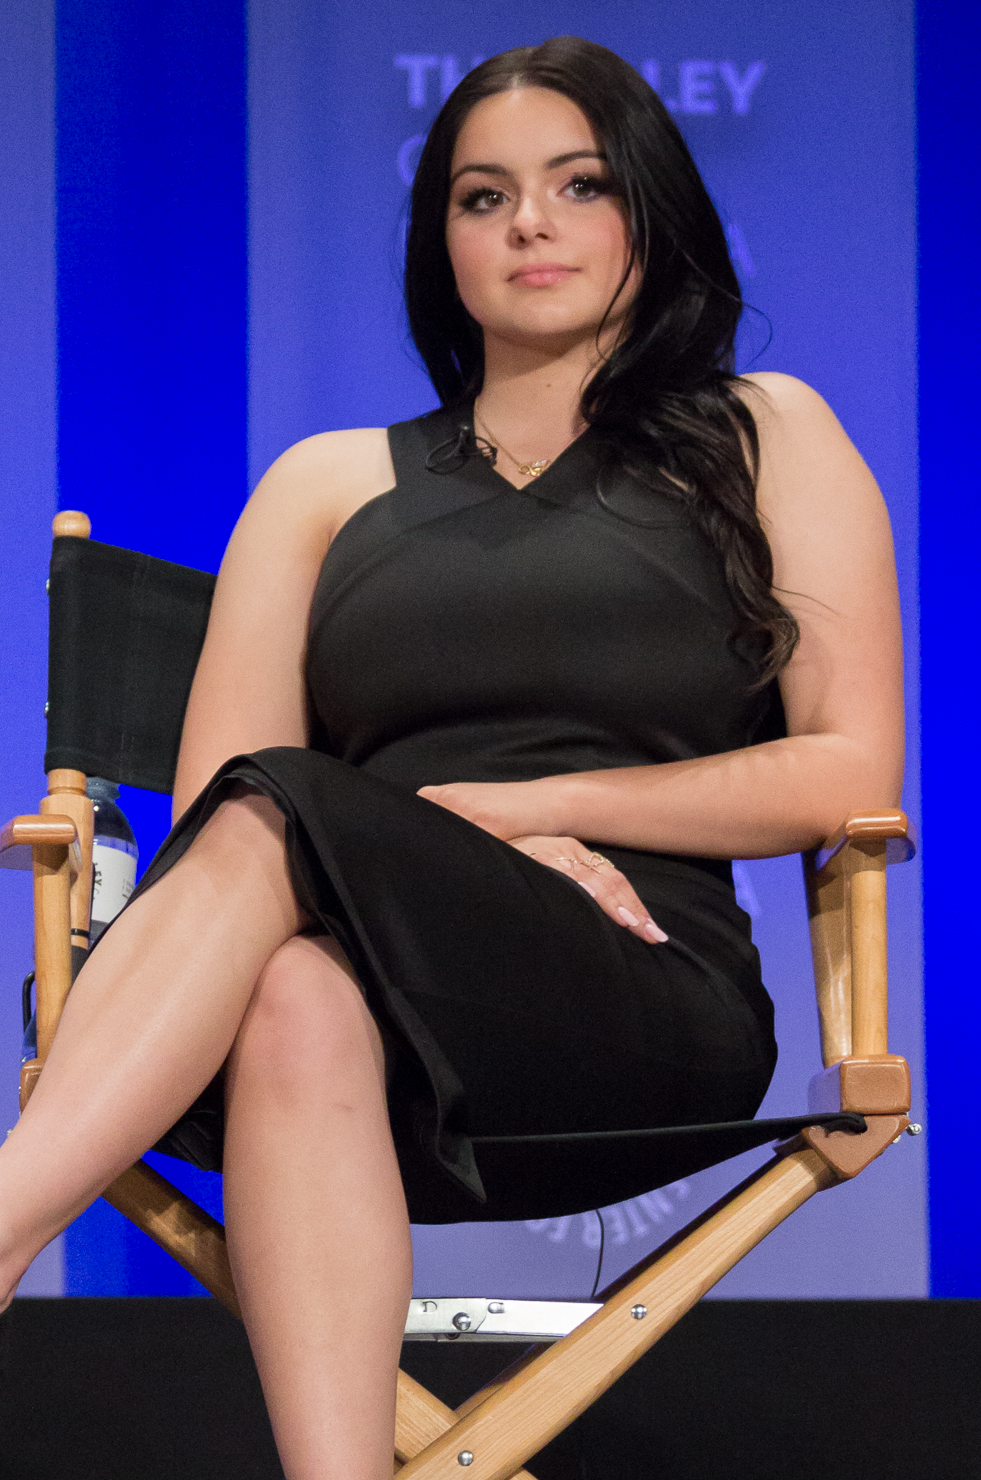 Ariel Winter - Wikipedia